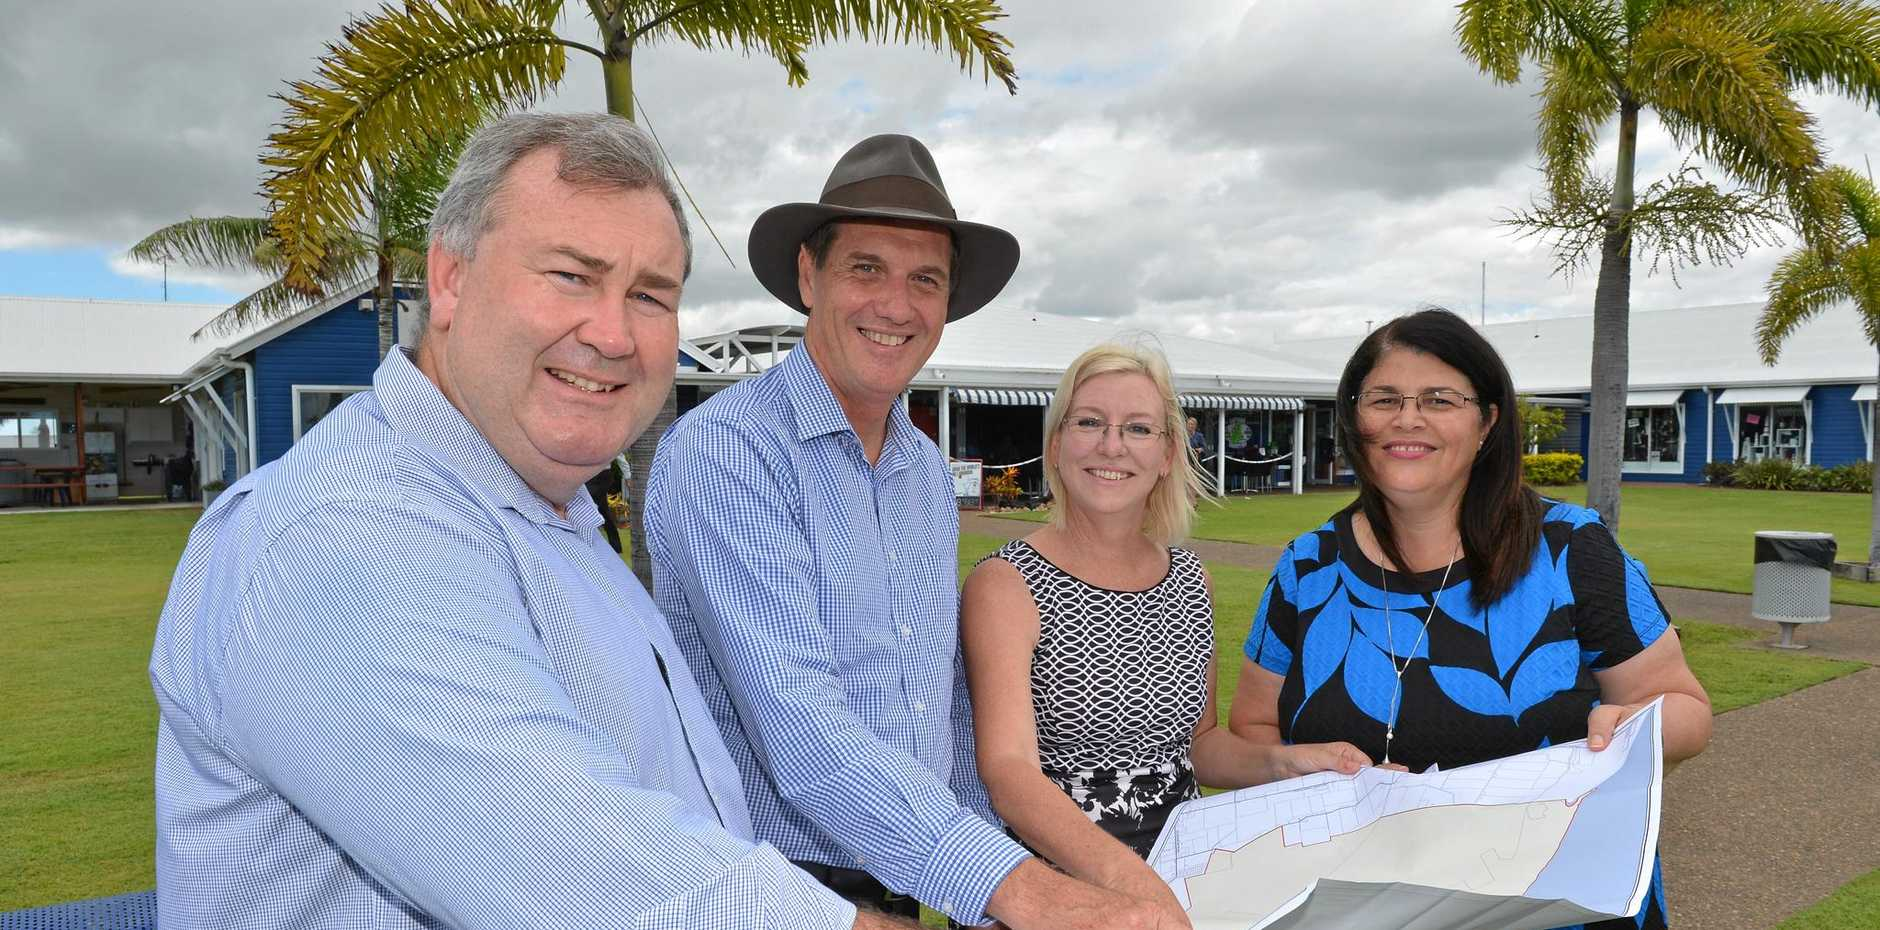 State Development Minister Dr Anthony Lynham (middle) said the State Government was providing $6.6 million to partner with Bundaberg and North Burnett councils on three important local projects.